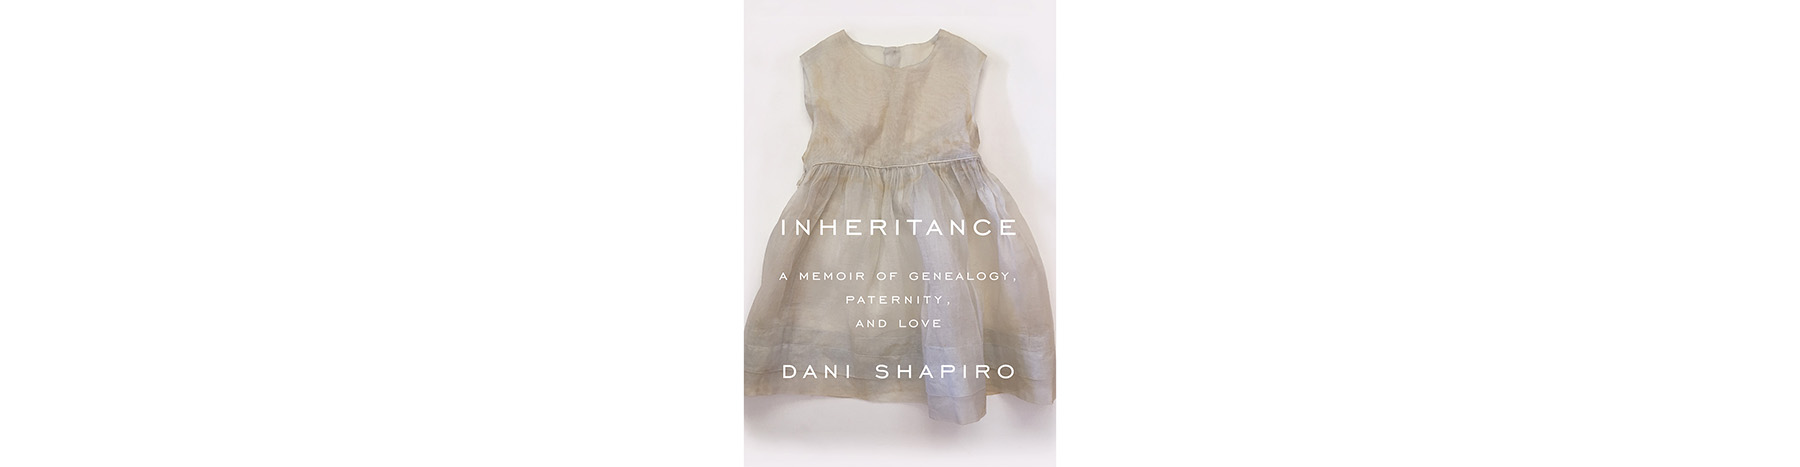 Cover of Inheritance, by Dani Shapiro